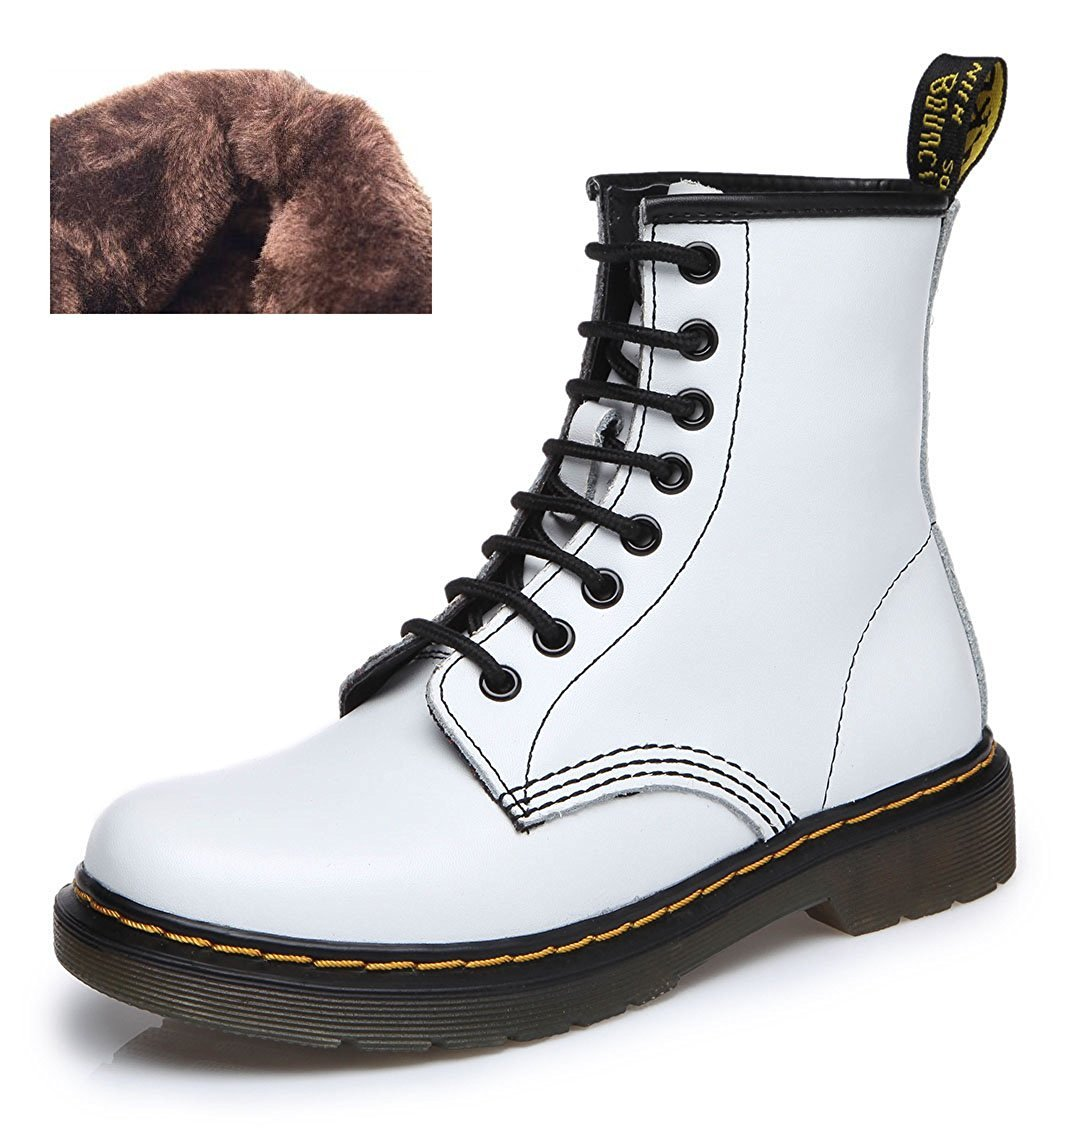 Modemoven Women's Round Toe Lase-up Ankle Boots Ladies Leather Combat Booties Fashion Martens Boots B06XP9J9ZT 6 B(M) US|White Fur Lined